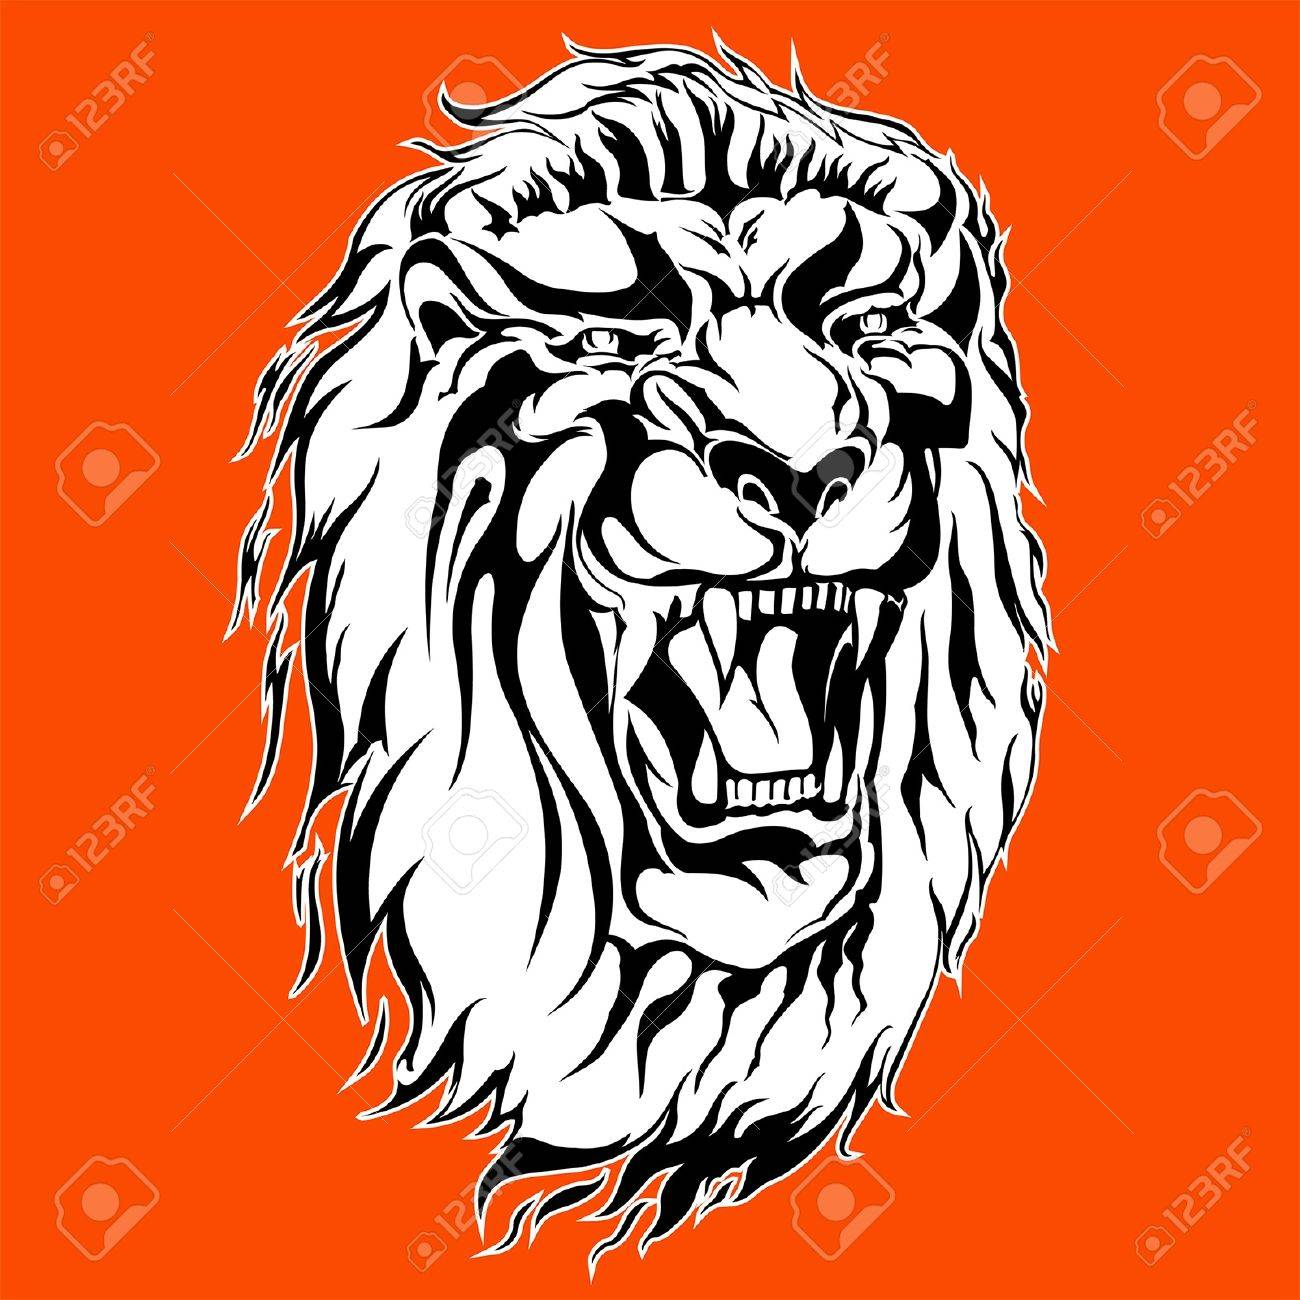 1300x1300 Roaring Lion Tattoo Royalty Free Cliparts, Vectors, And Stock